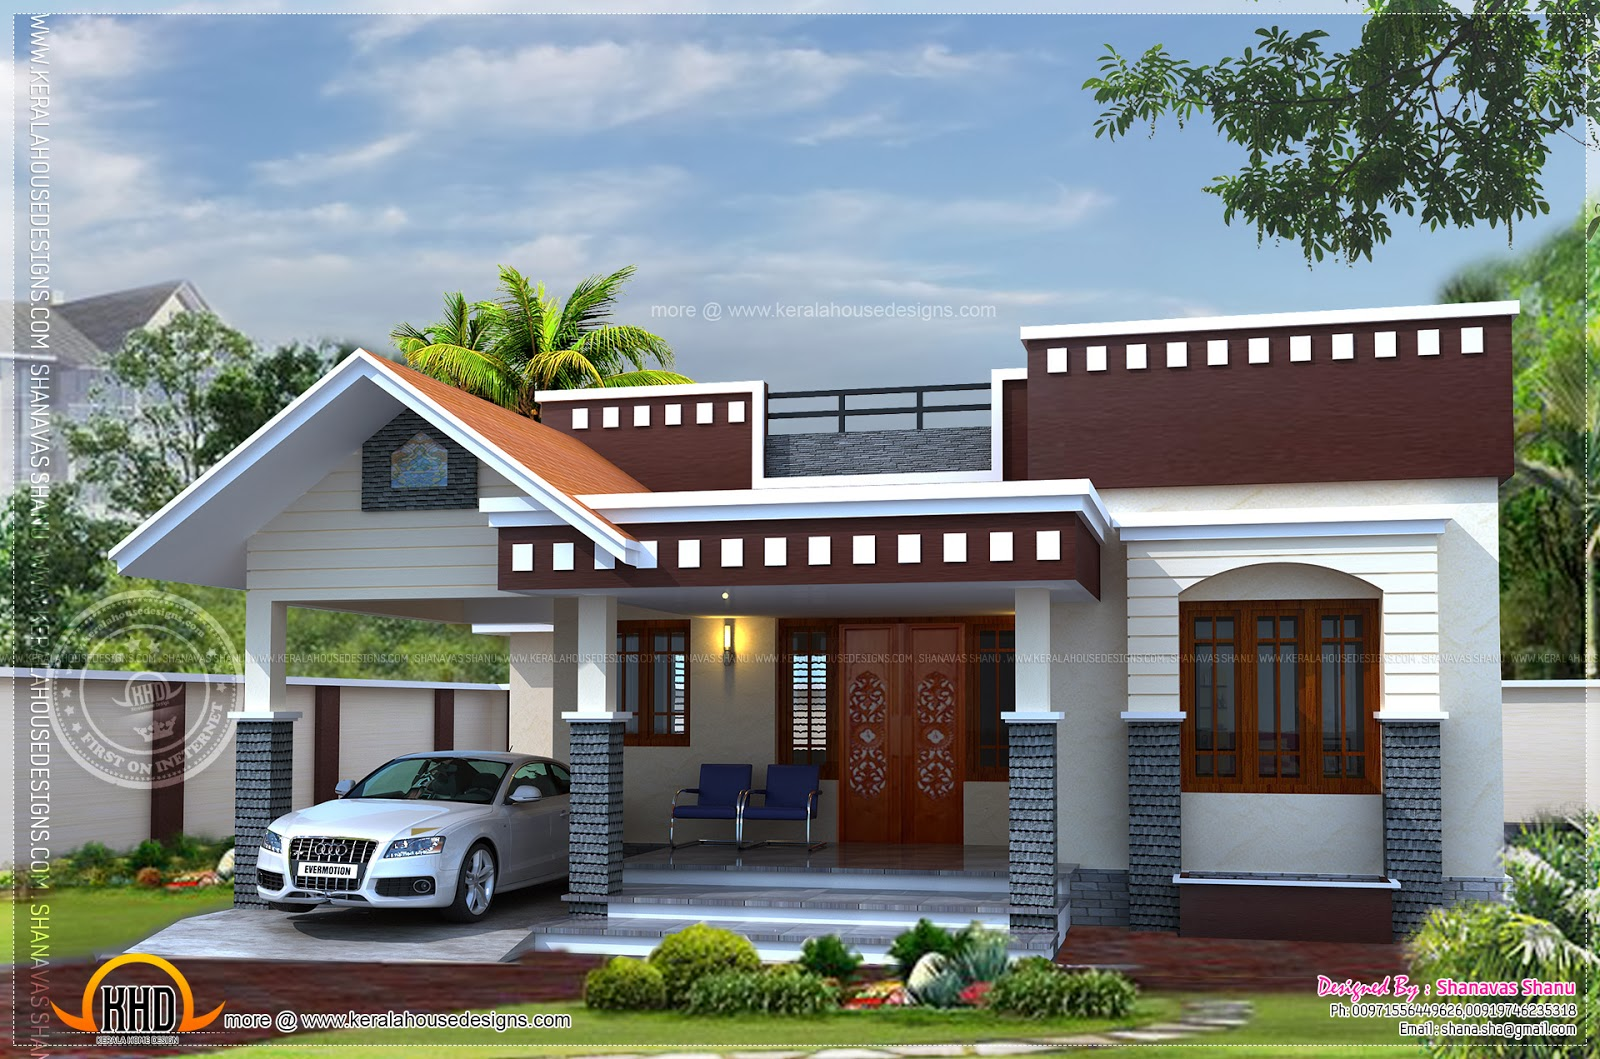 Home plan of small house kerala home design and floor plans for Small home plan in kerala